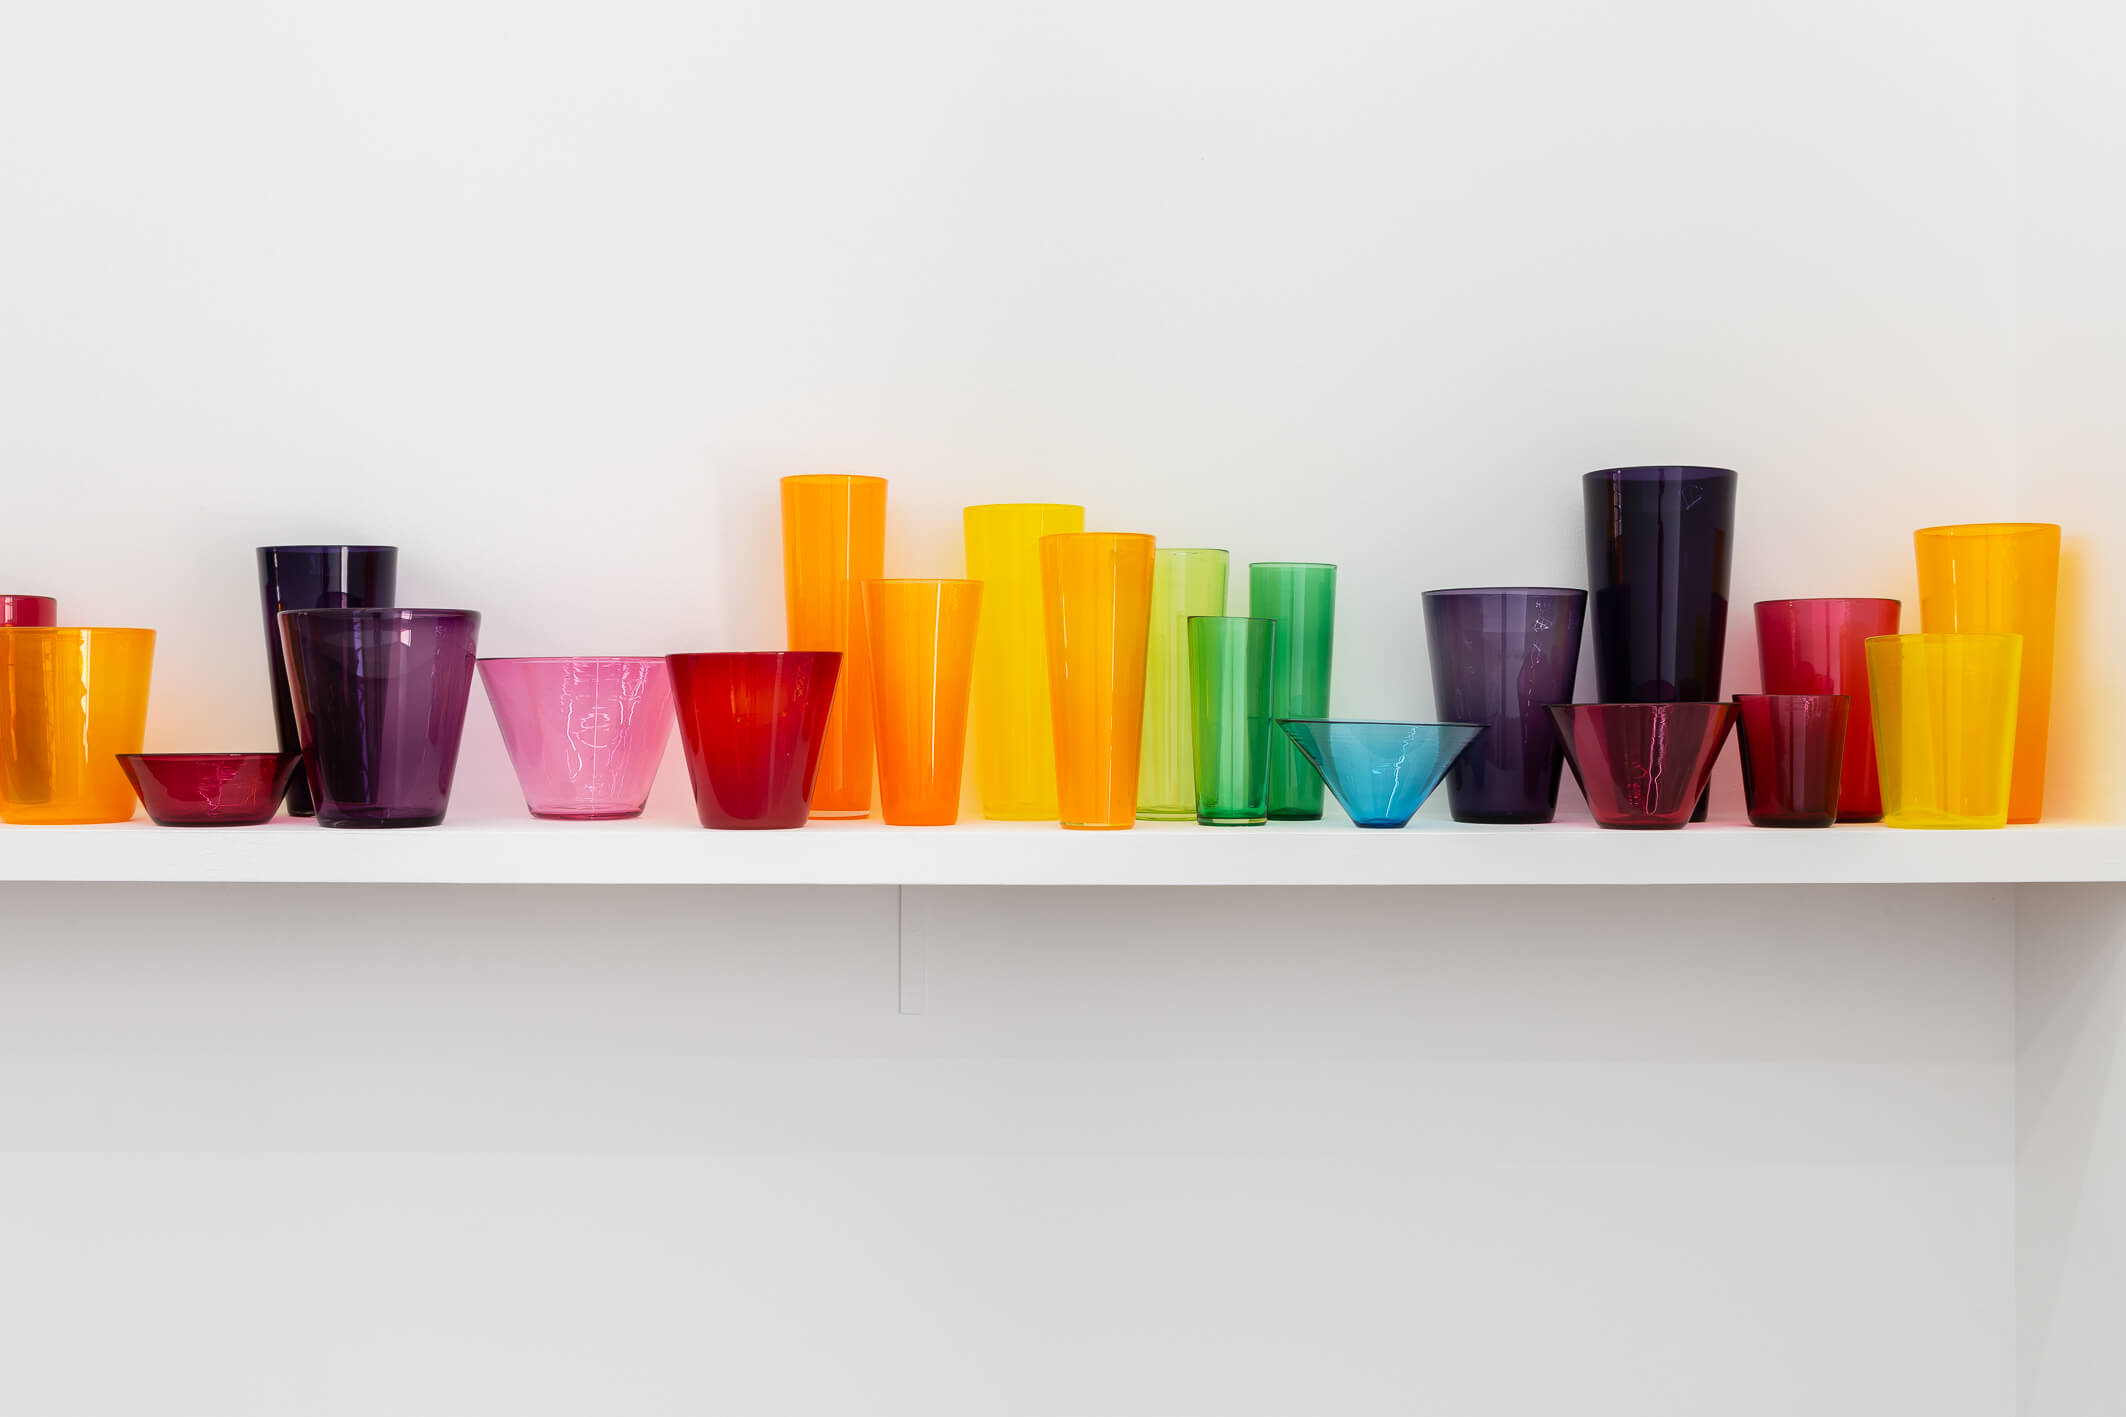 Title: Fugue | Date Made: 2008-2018 | Dimensions:variable | Medium:blown glass vessels, customised shelf | Photographer: Christo Crocker